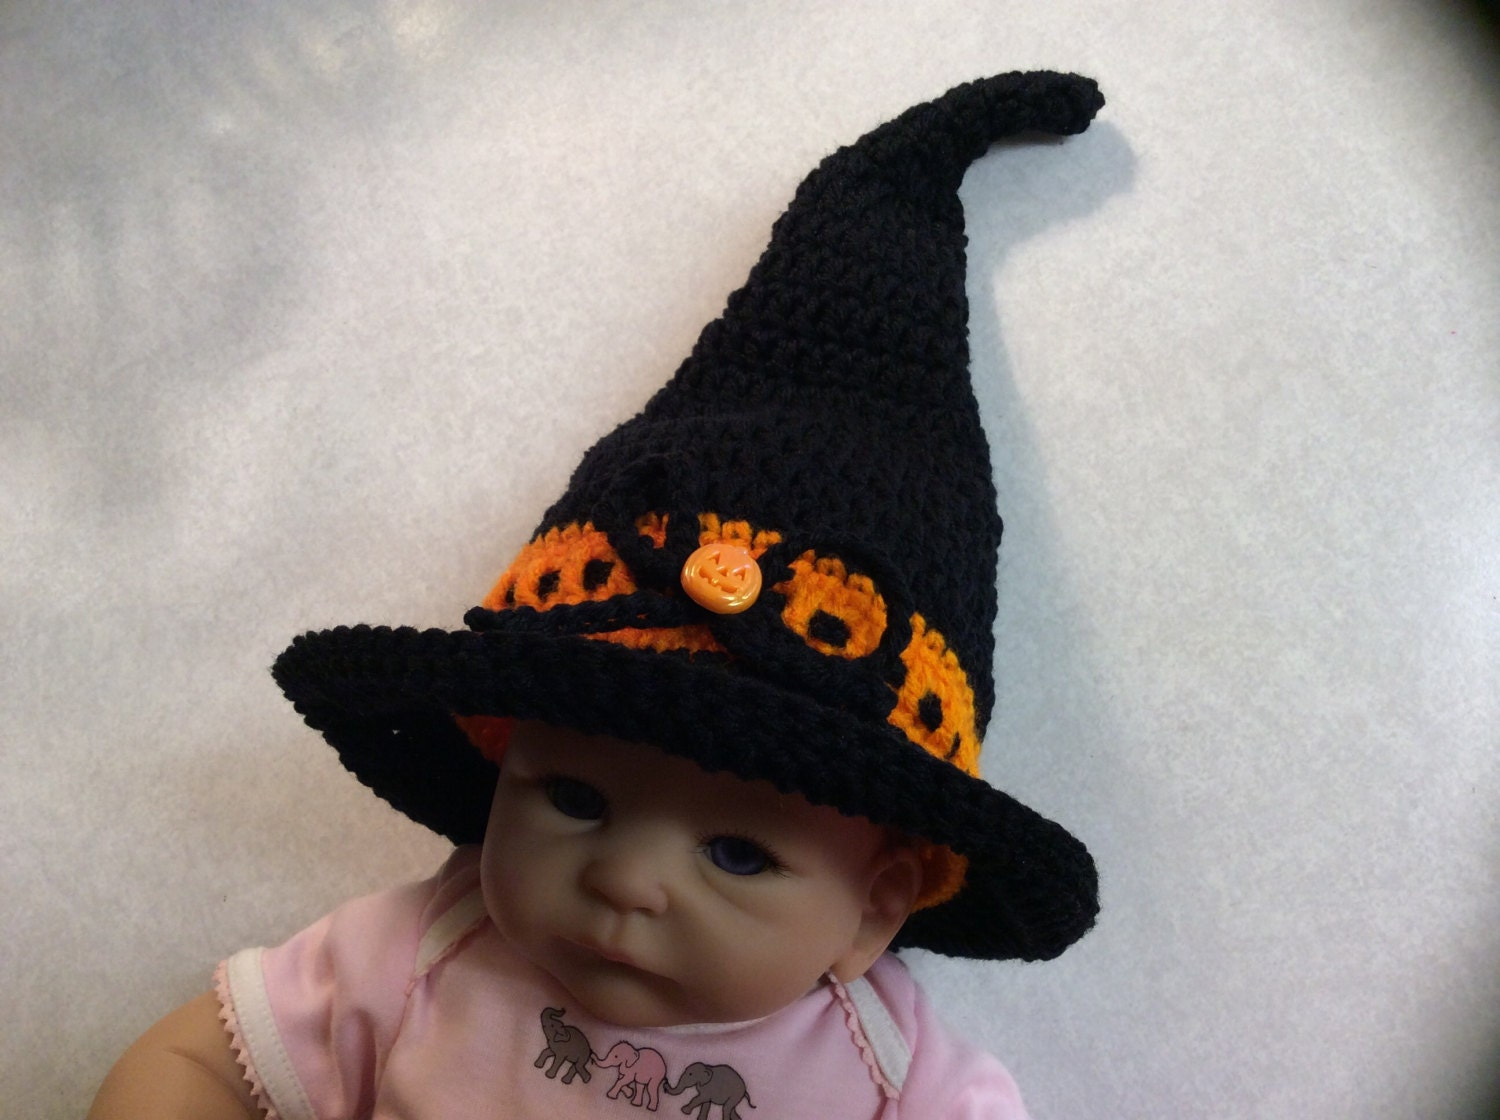 You searched for: baby halloween hat! Etsy is the home to thousands of handmade, vintage, and one-of-a-kind products and gifts related to your search. No matter what you're looking for or where you are in the world, our global marketplace of sellers can help you .